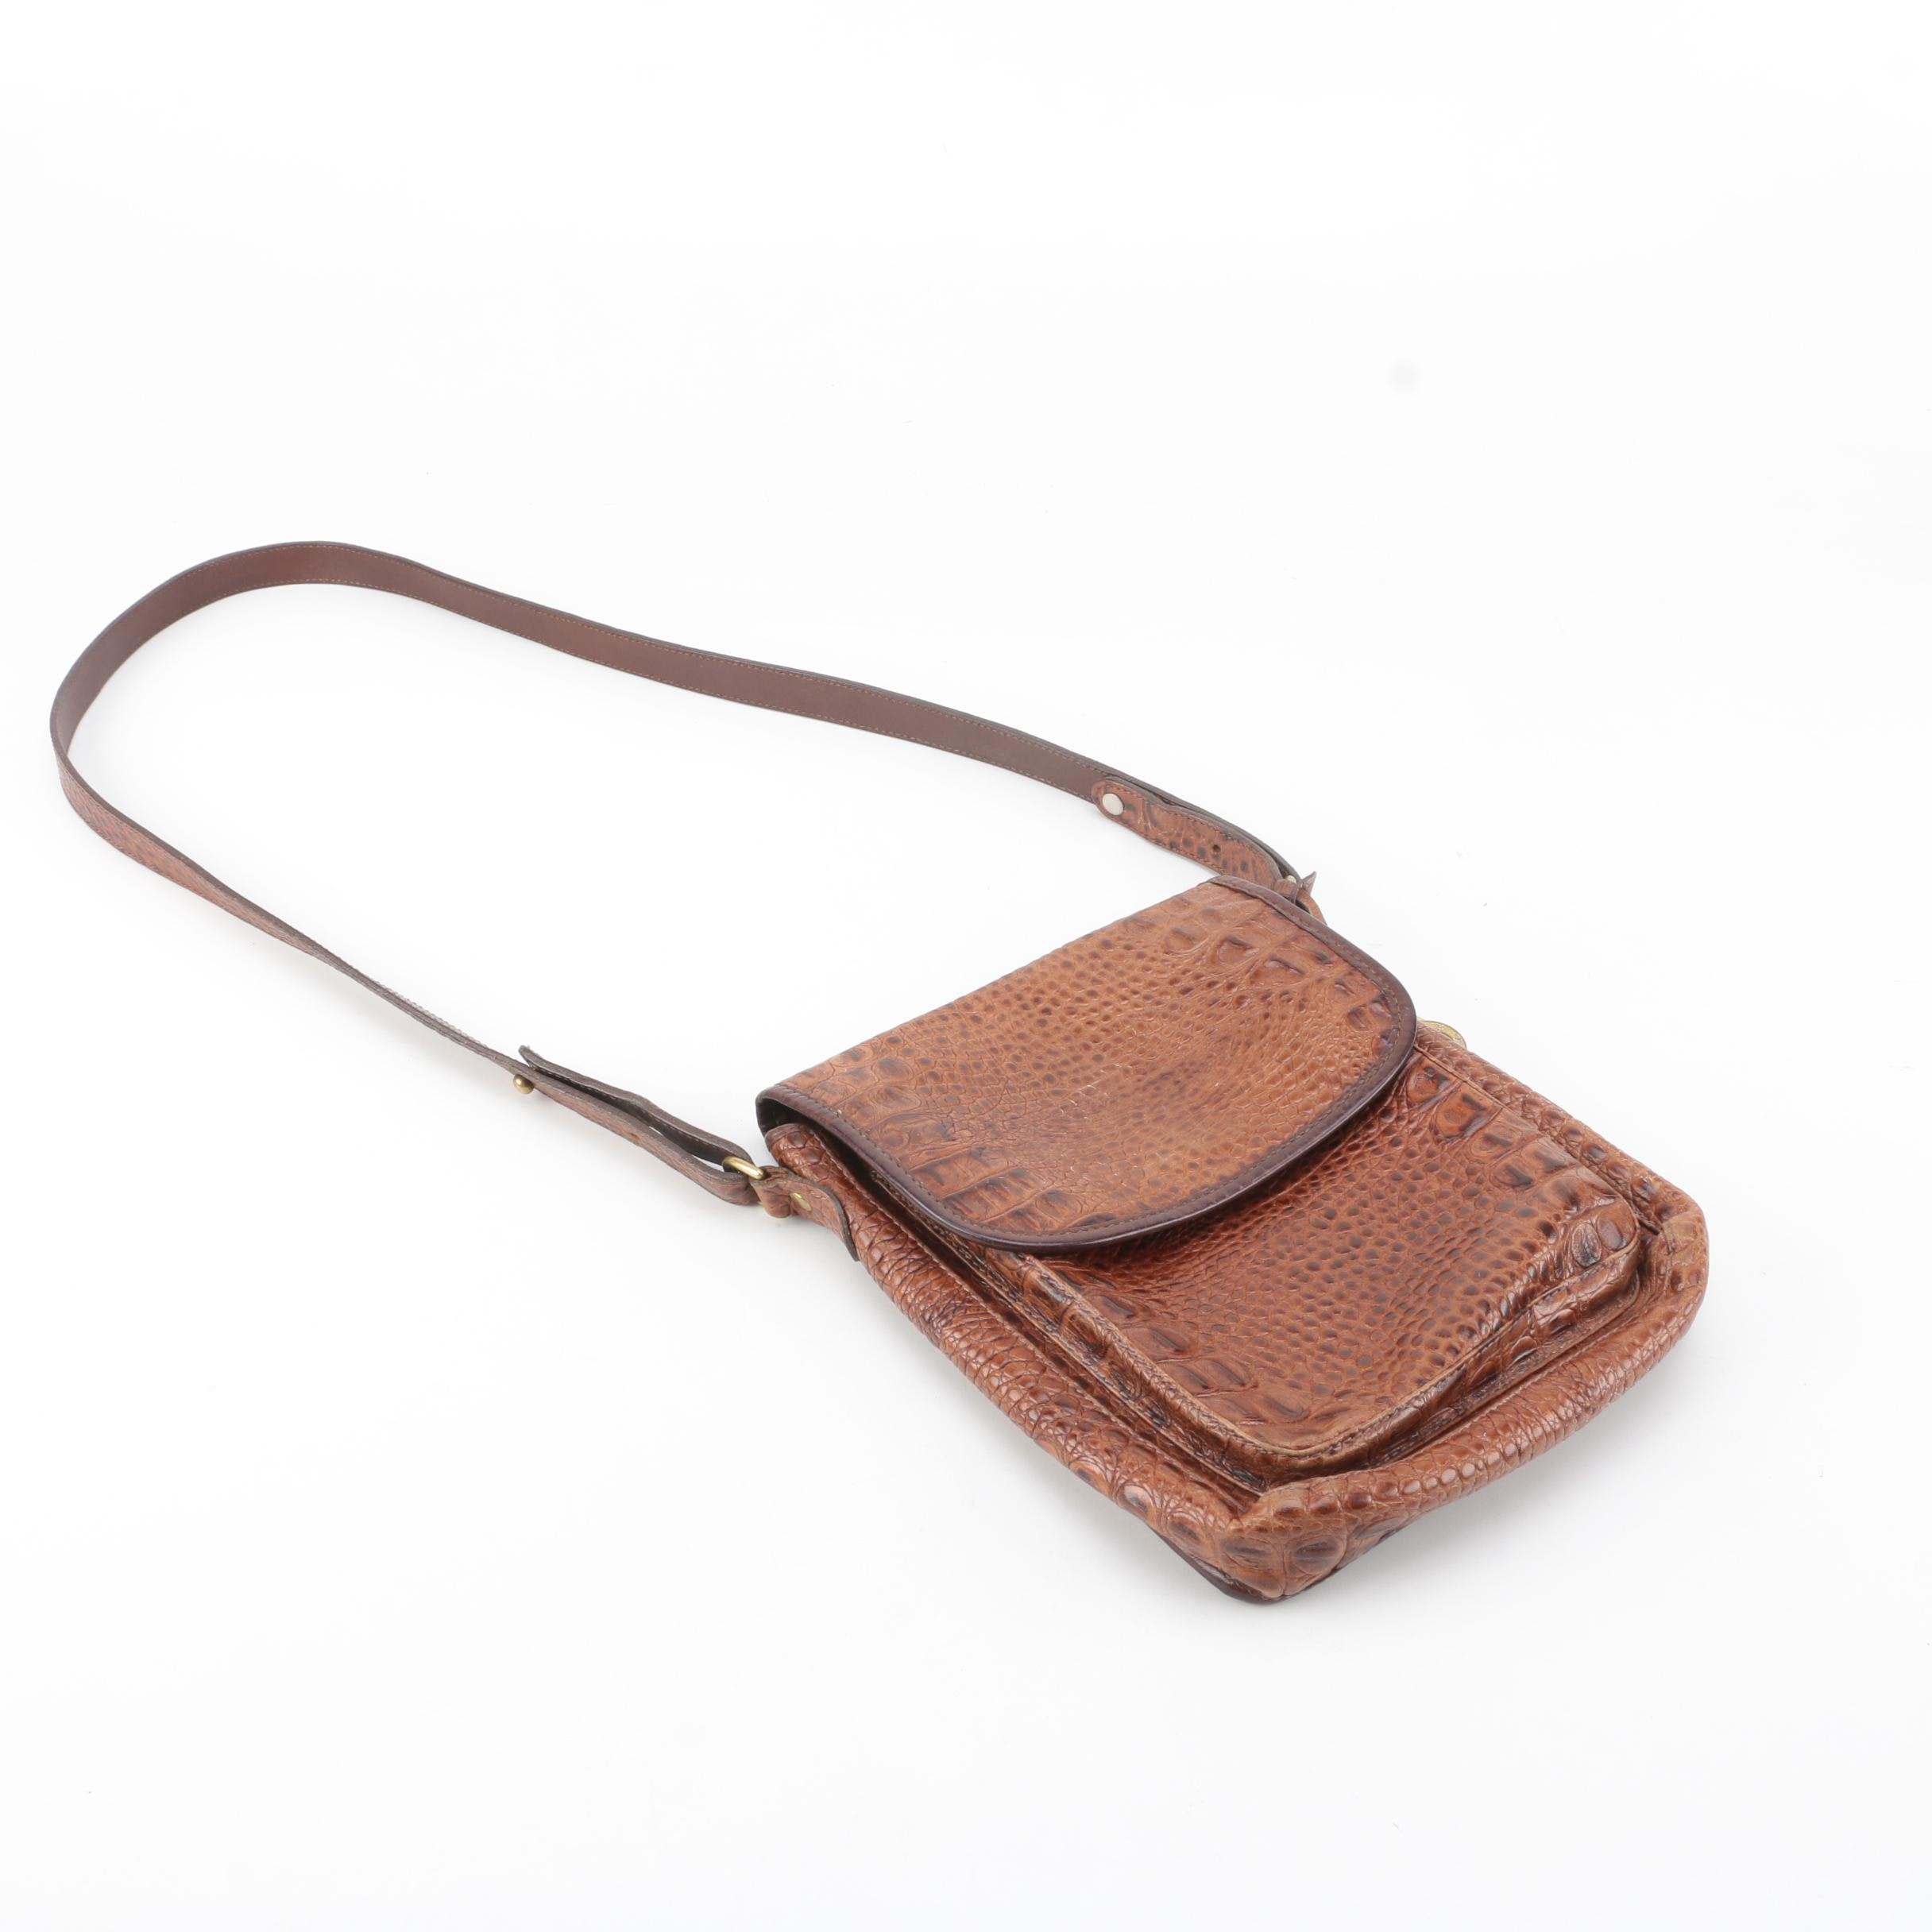 Brahmin Brown Crocodile-Embossed Leather Crossbody Bag